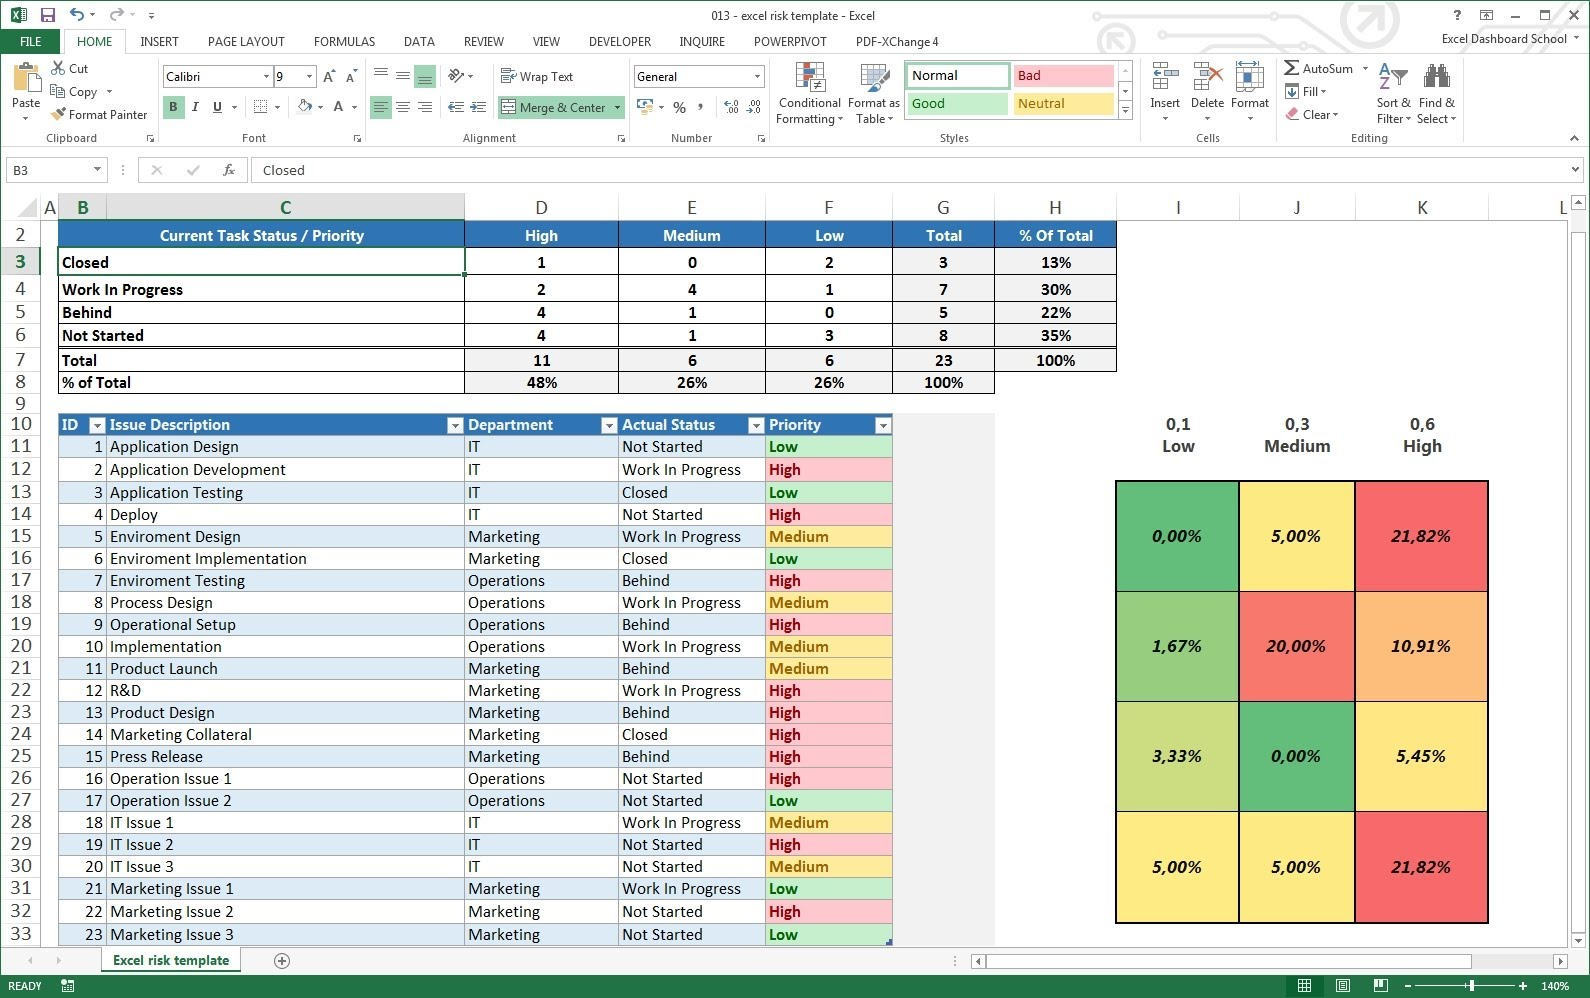 issue tracking spreadsheet template excel laobing kaisuo. Black Bedroom Furniture Sets. Home Design Ideas